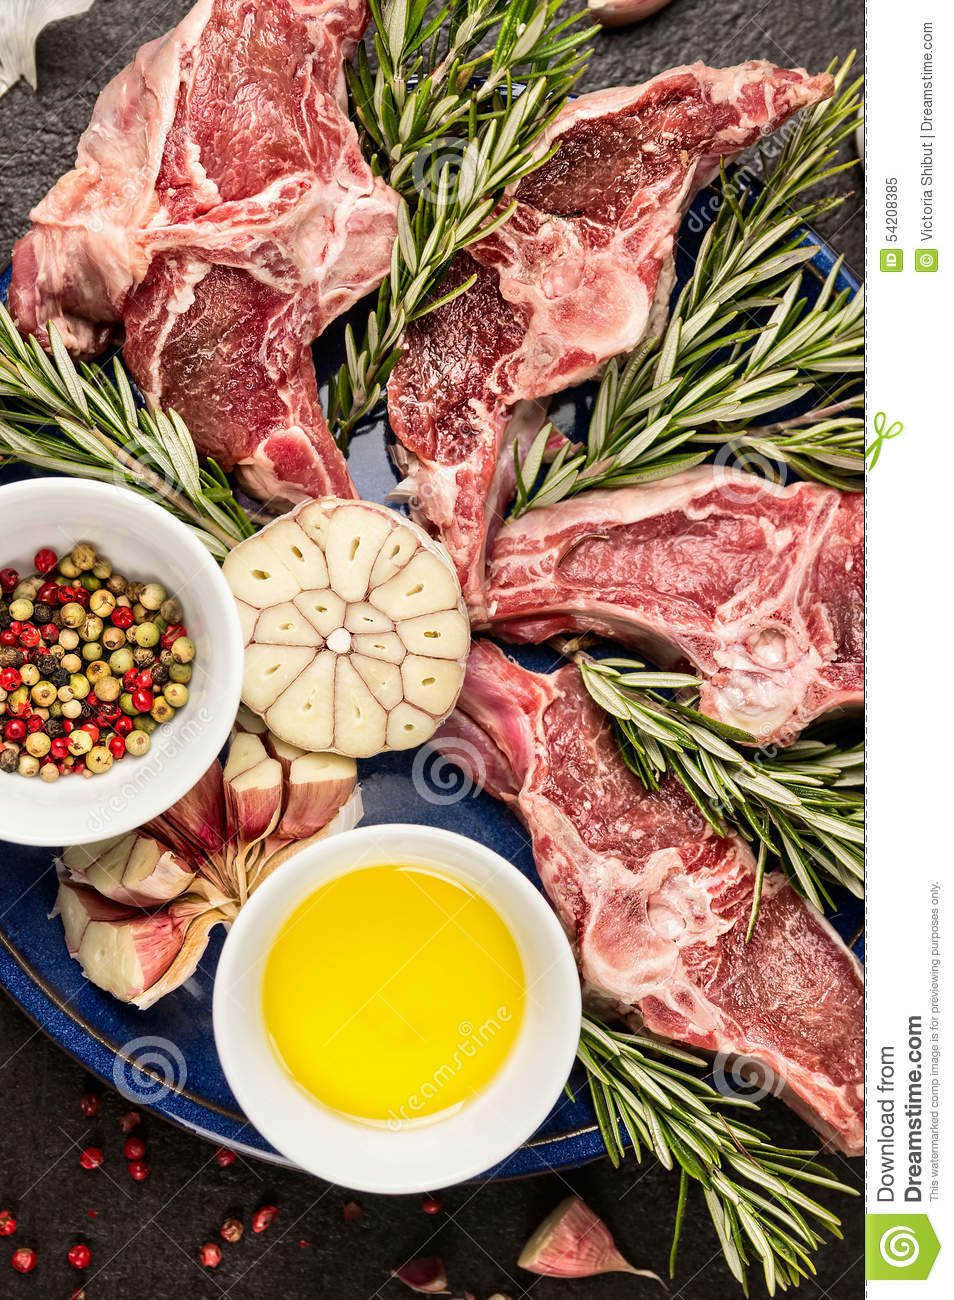 Double Lamb Loin Chops With Oil And Spices Stock Photo - Image ...